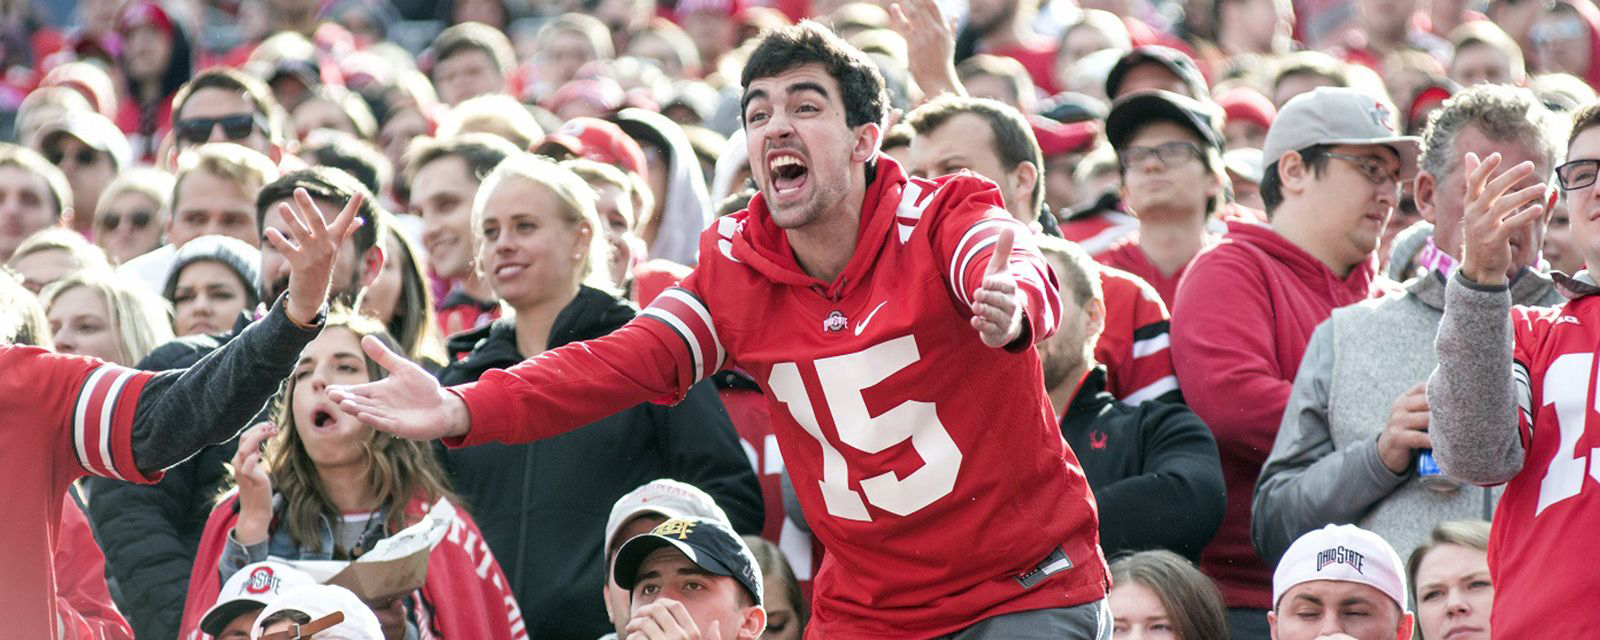 Ohio State fan cheering from the stands.